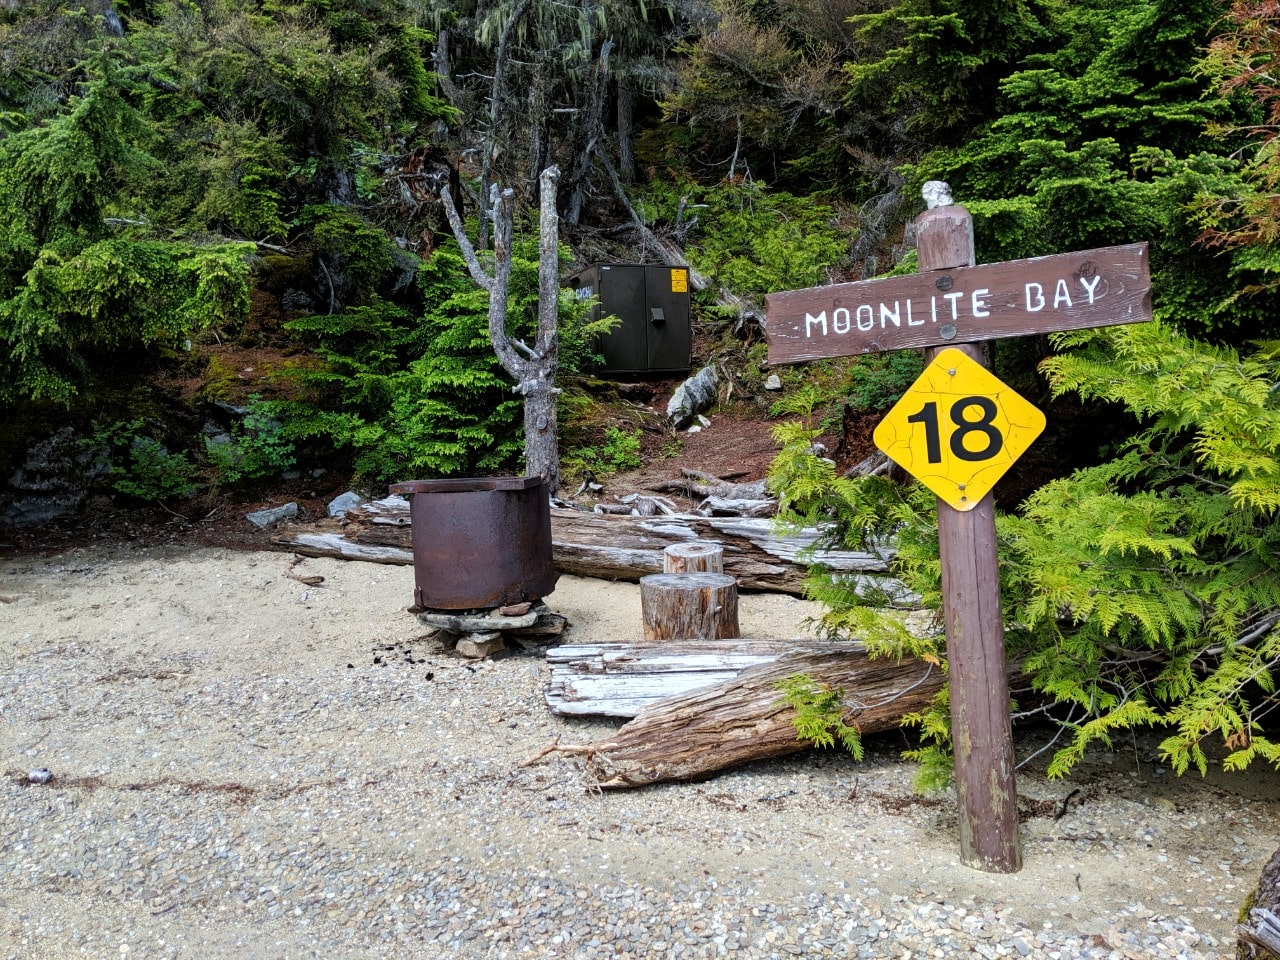 Beach view of Moonlite Bay campsite with yellow sign, fie pit and food cache in background